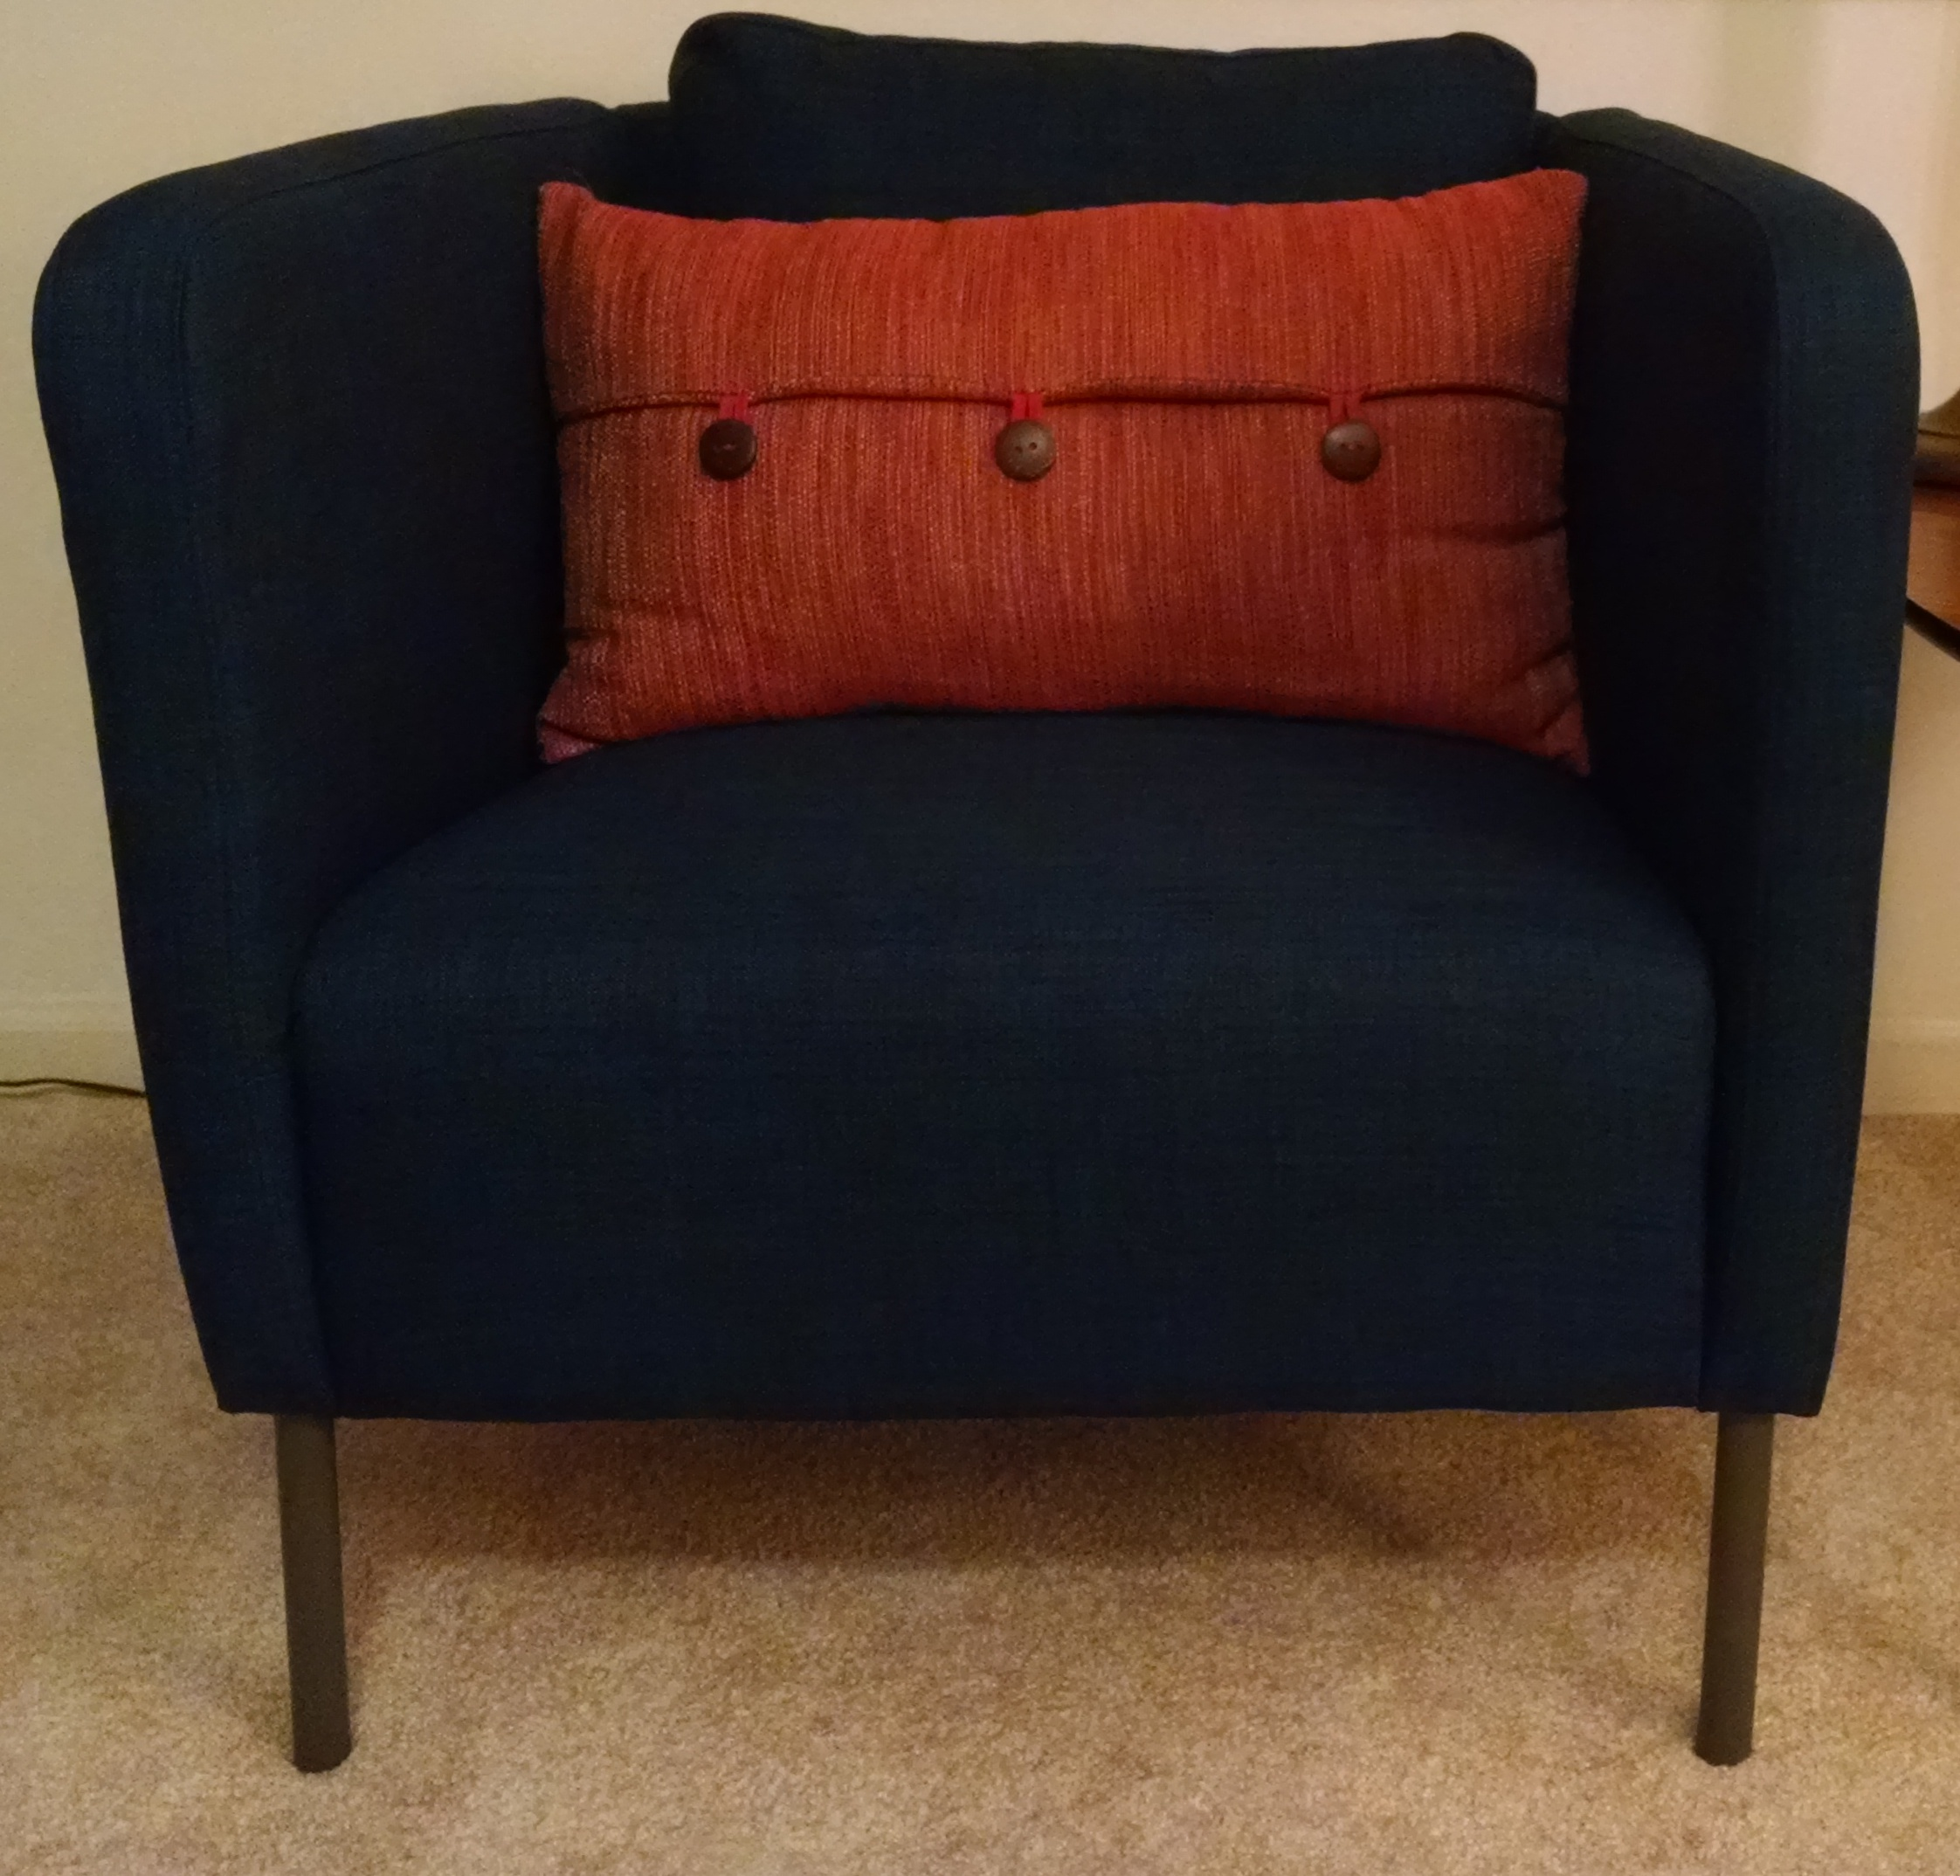 sofa chair ikea counter height chairs swivel replace legs for a couch and more alan pringle ekero with original steel